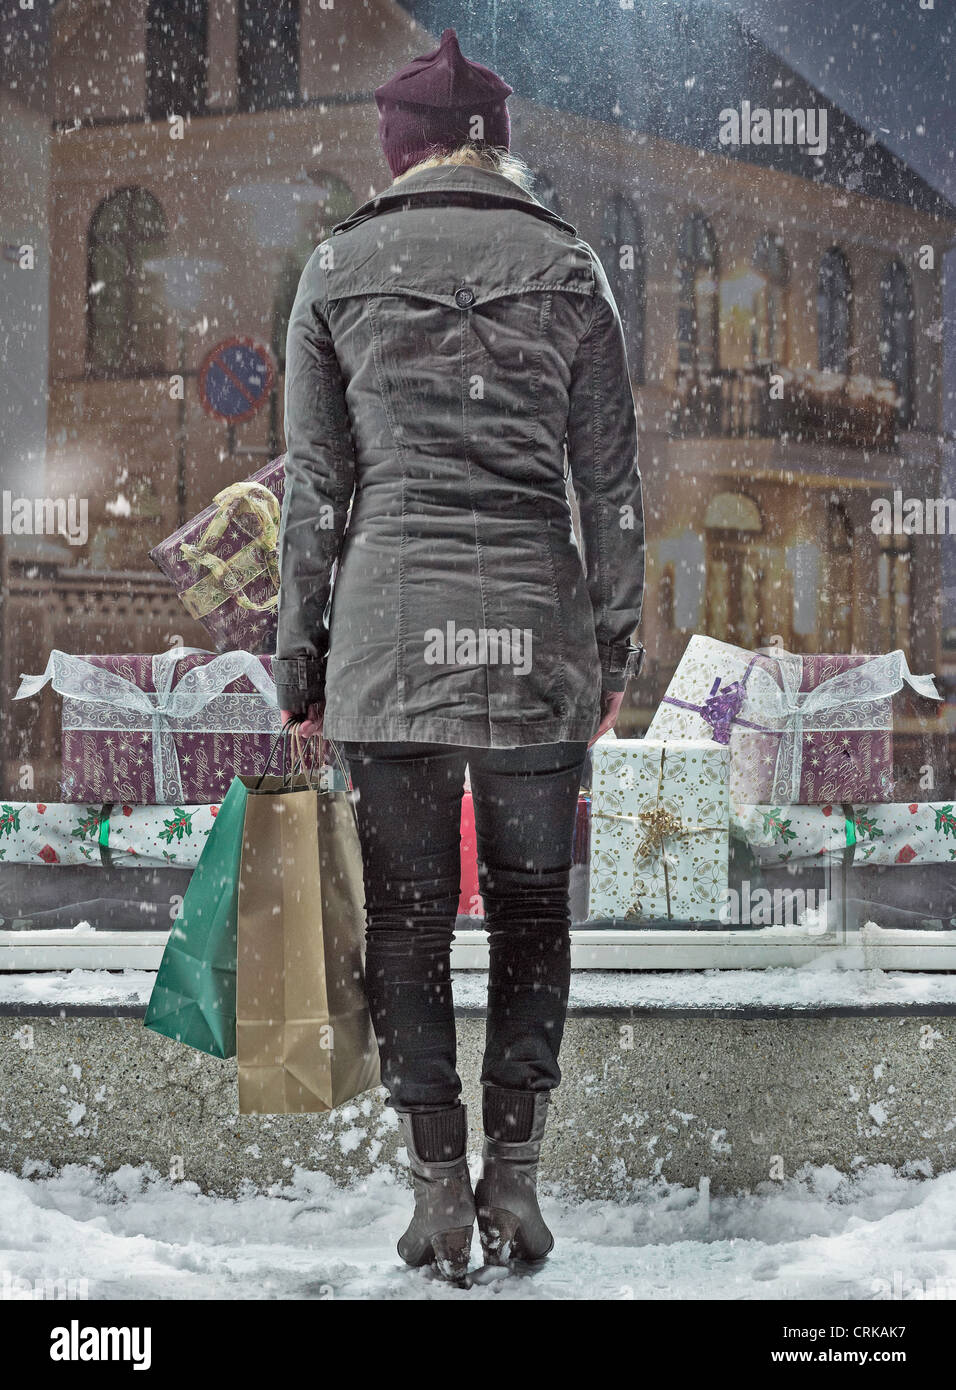 Woman carrying shopping bags in snow Stock Photo